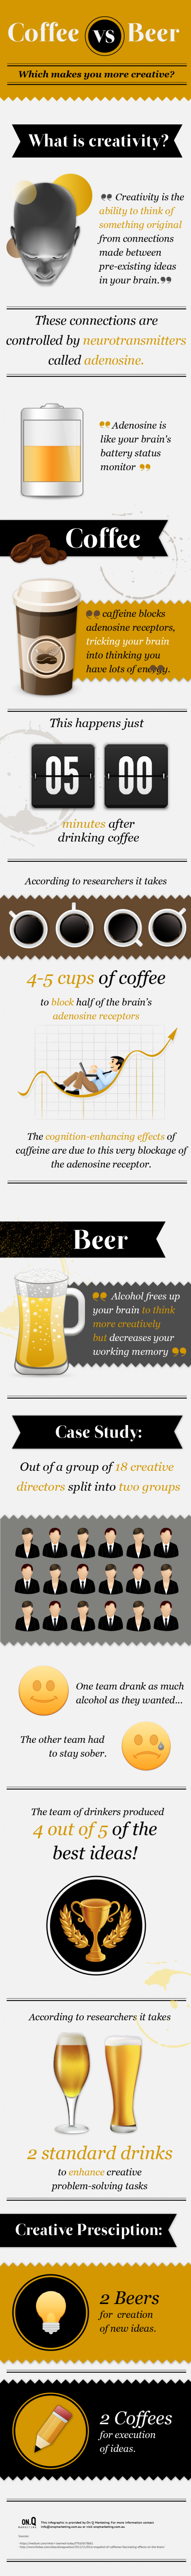 Coffee or Beer : What makes you more creative?